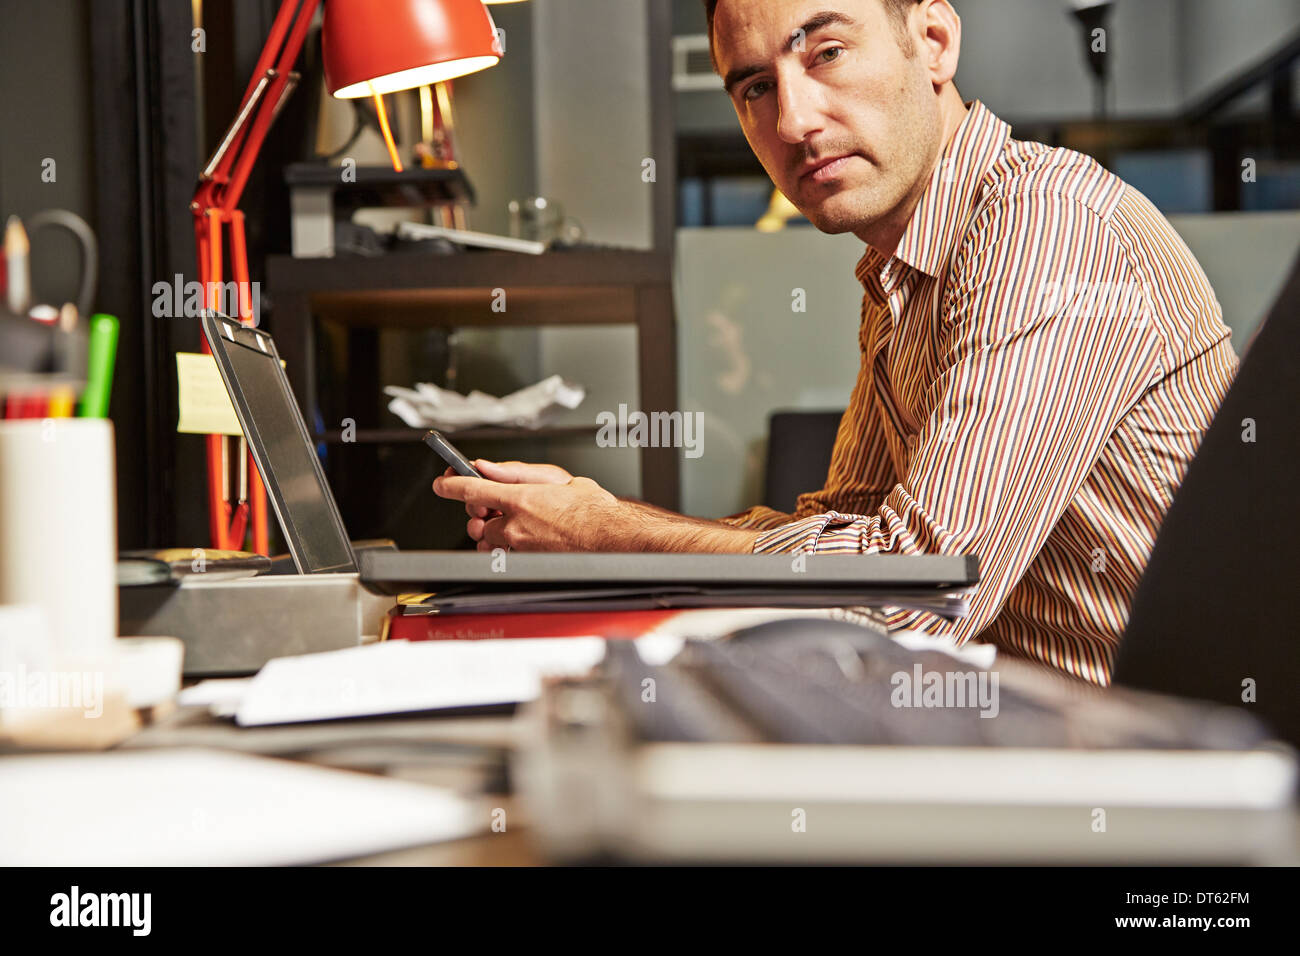 Businessman at desk using cell phone - Stock Image